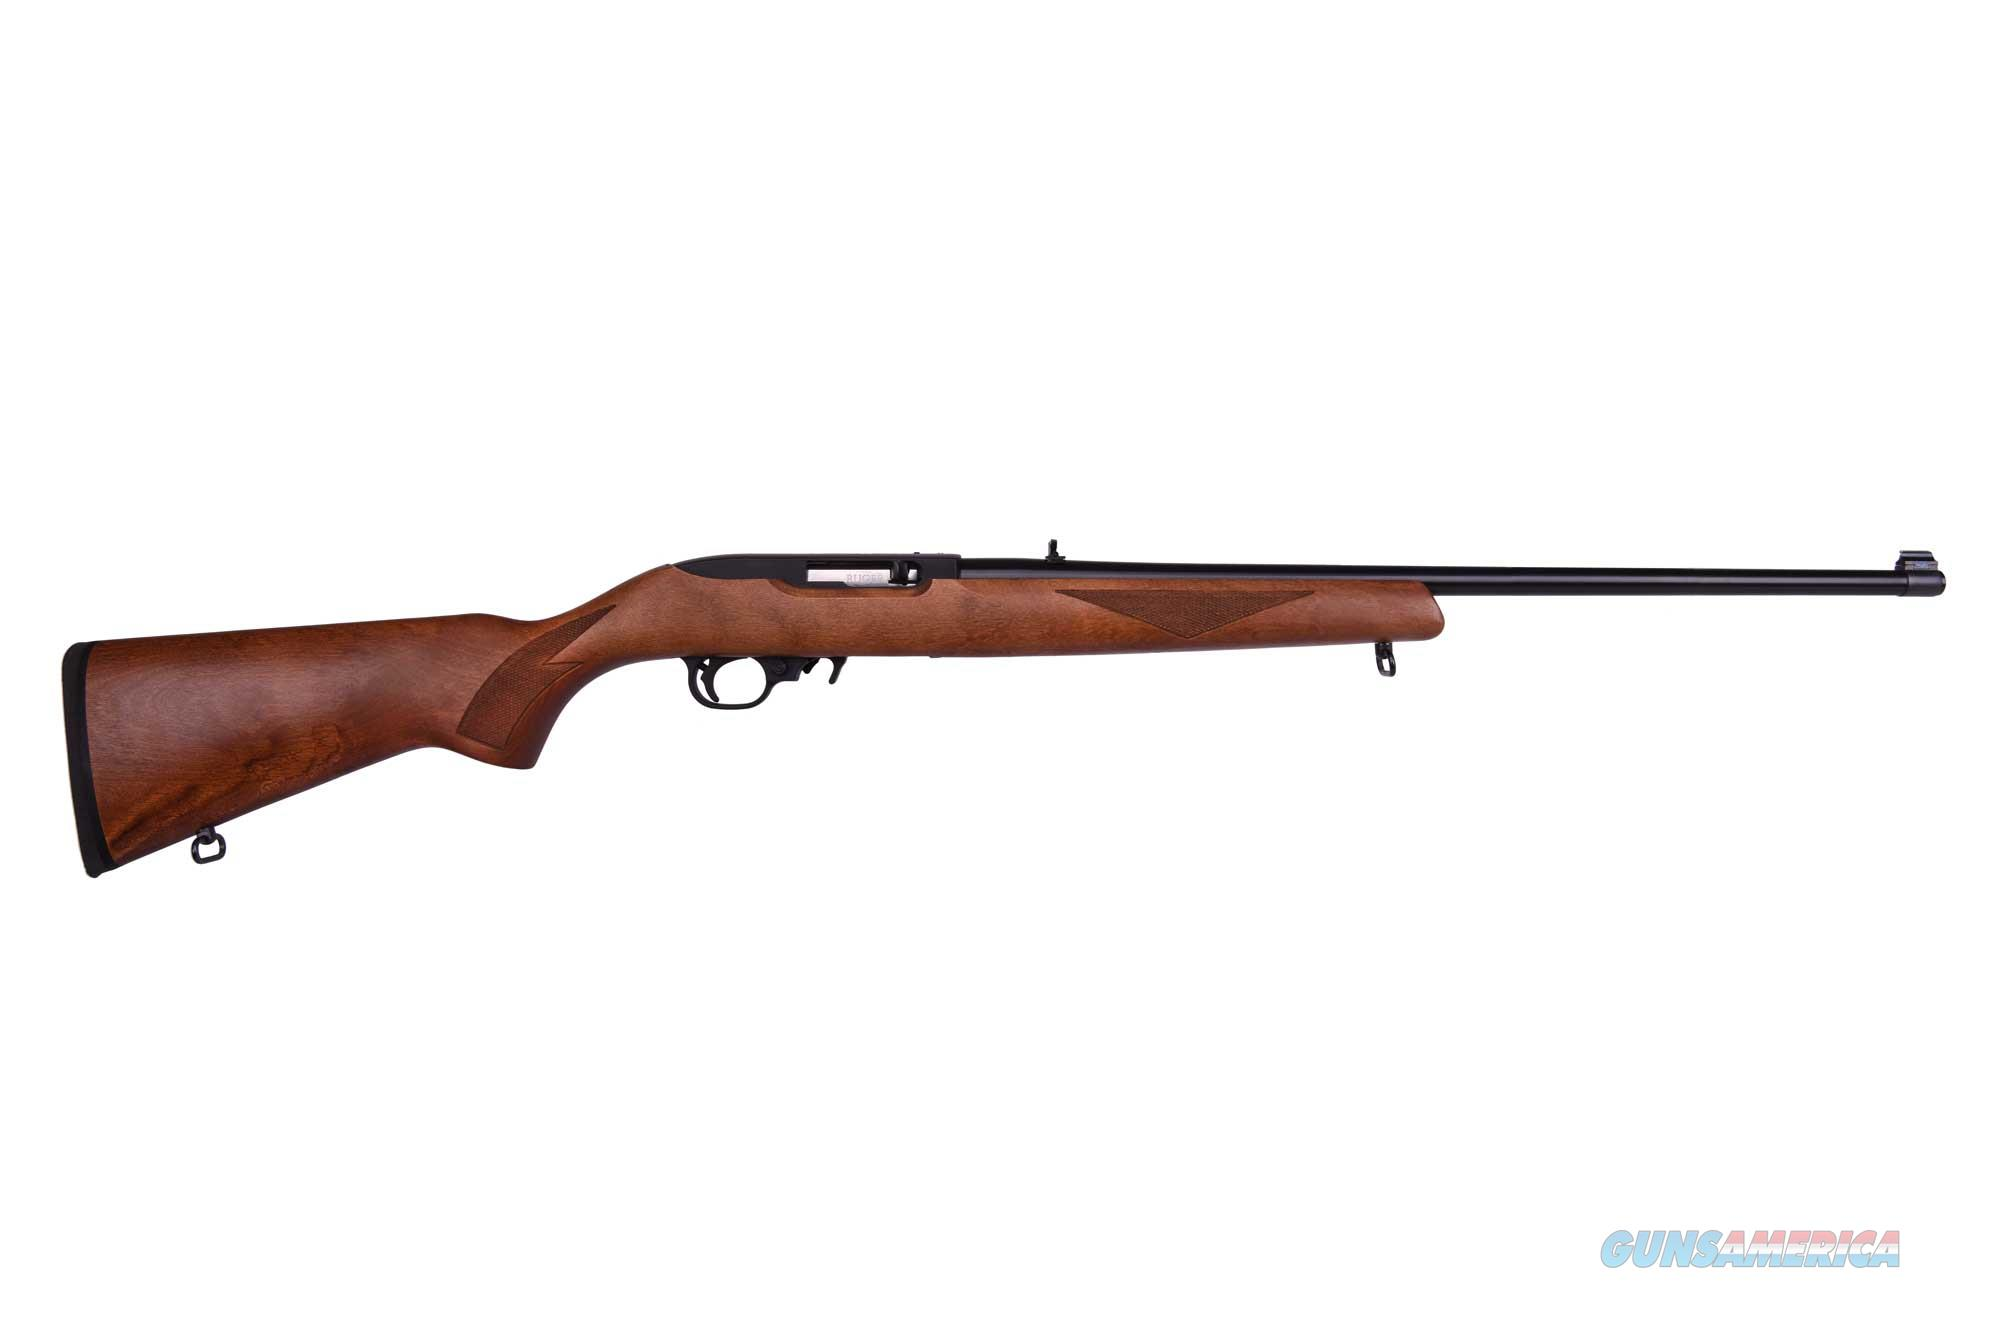 Ruger 10/22 22LR BL/WD 22 1150 DELUXE SPTR STYLE STOCK  Guns > Rifles > Ruger Rifles > 10-22